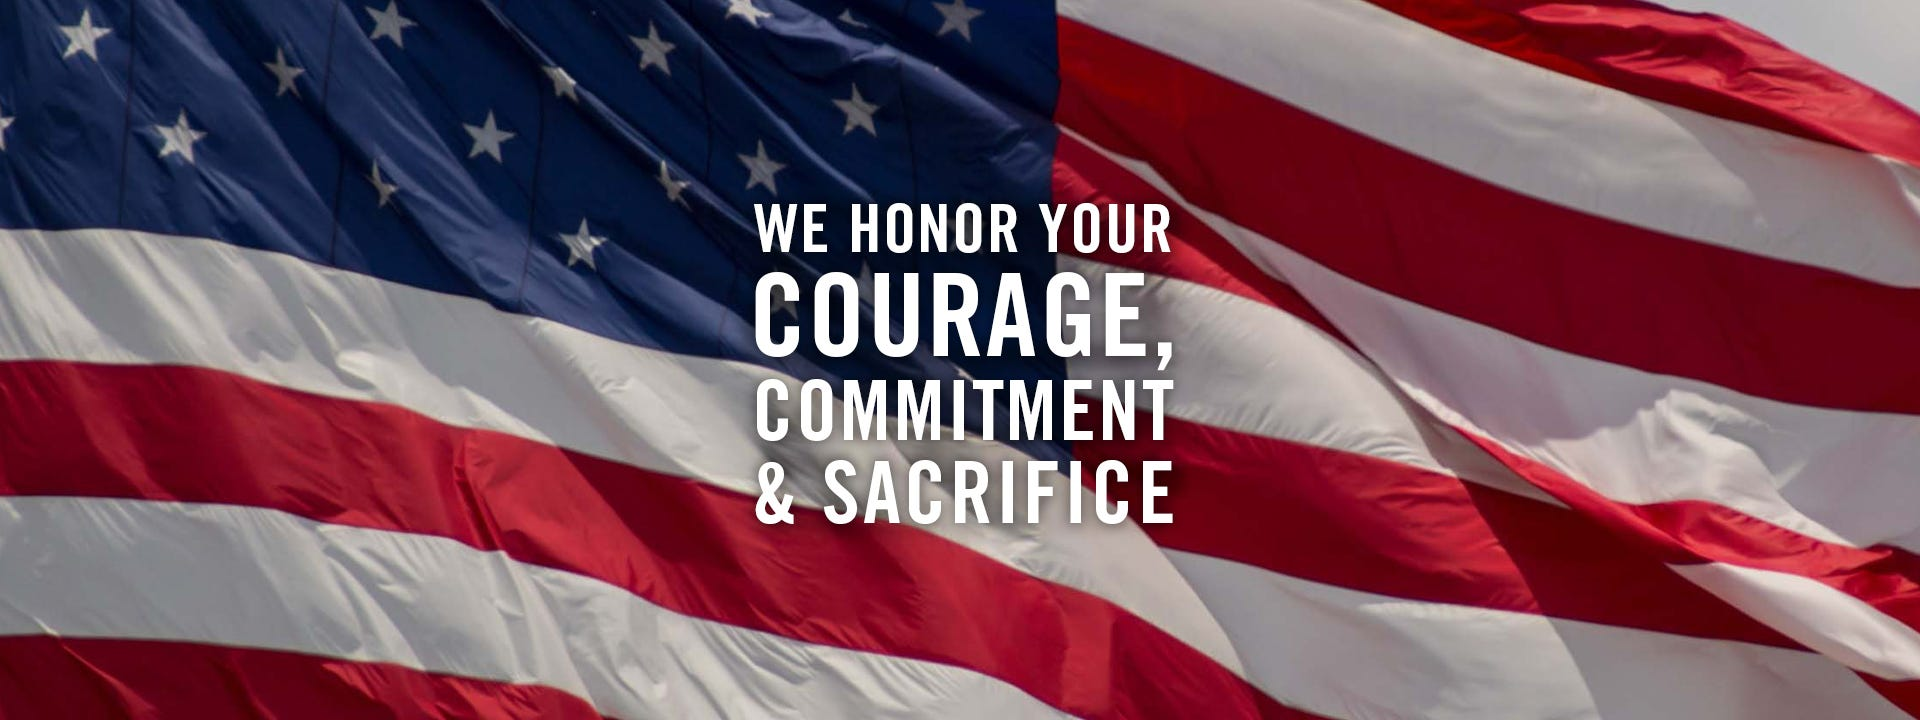 We Honor Your Courage, Commitment & Sacrifice